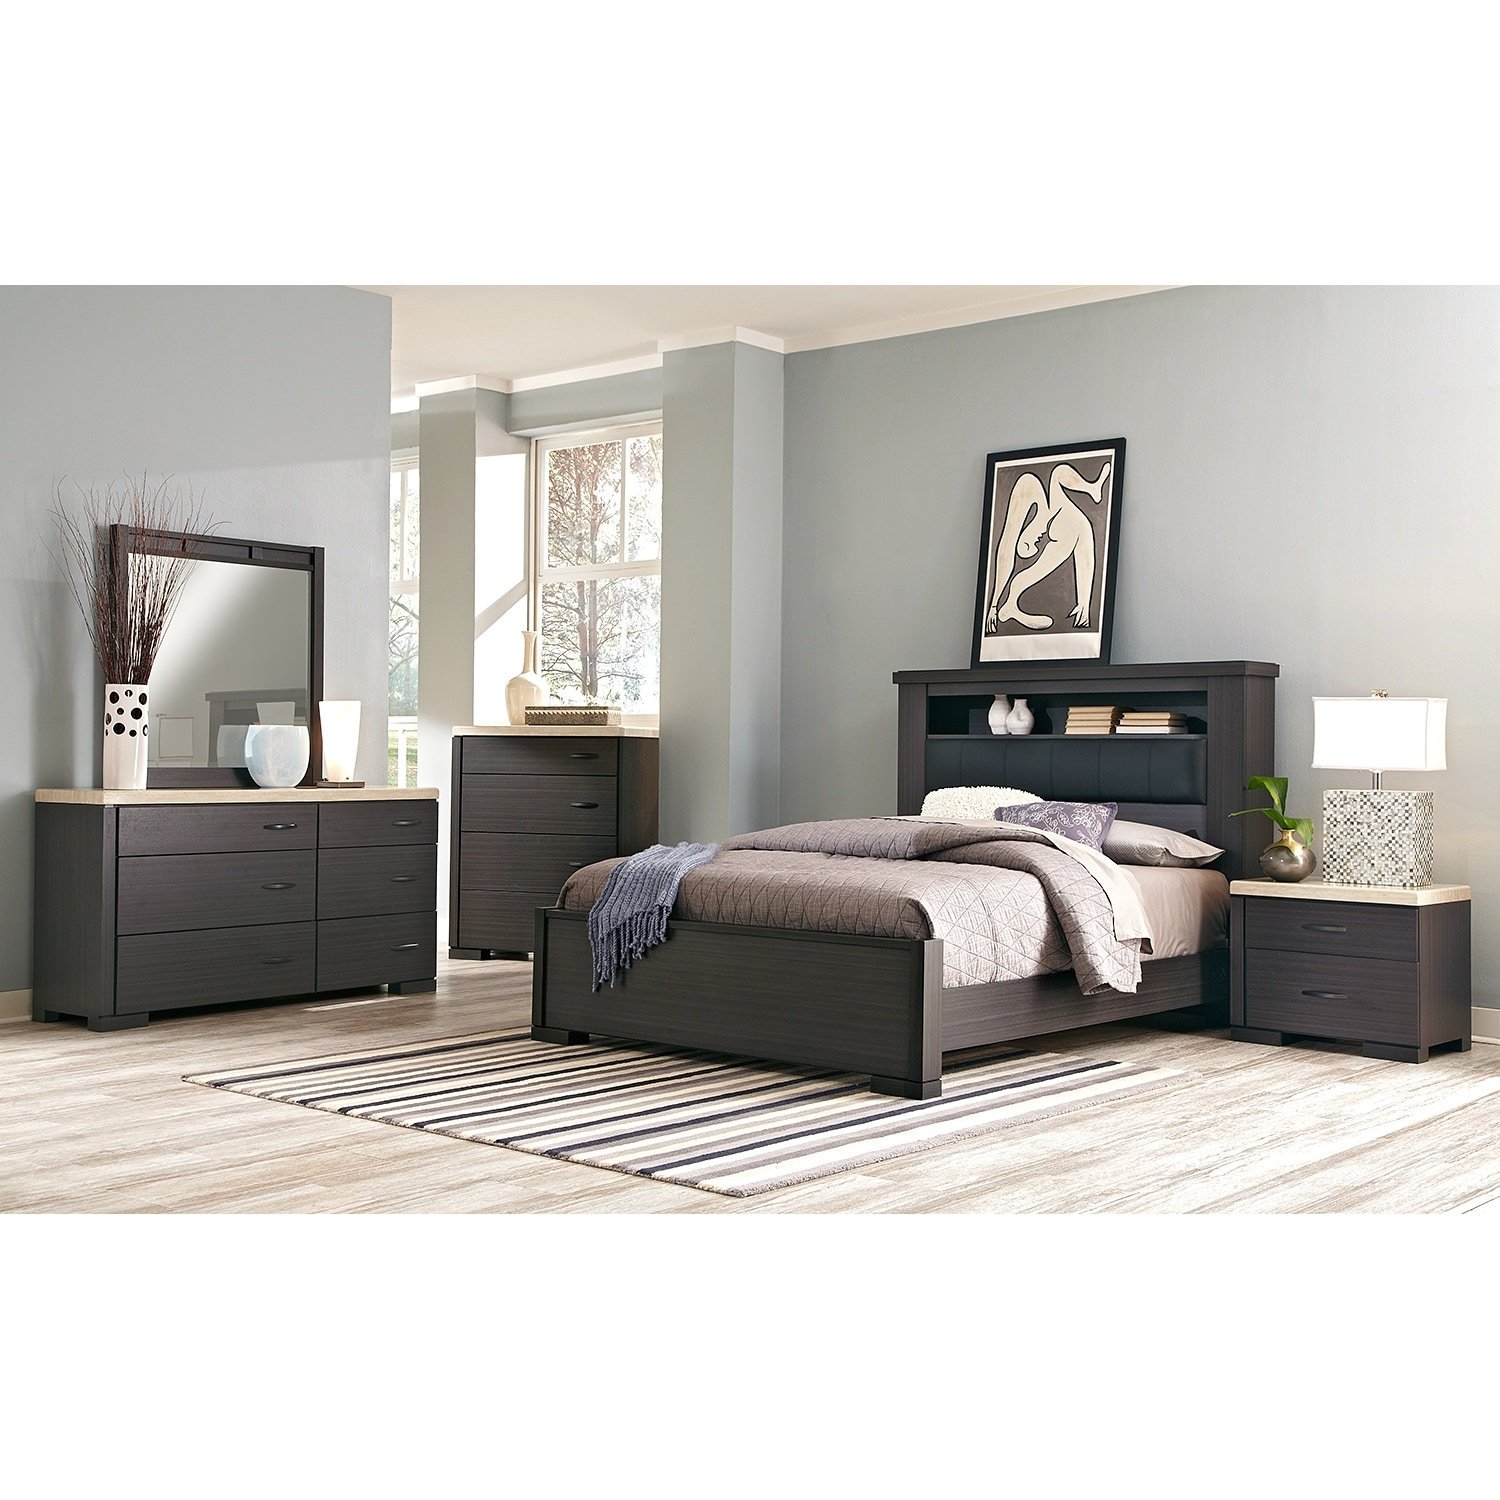 Camino 7 piece king bedroom set charcoal and ivory for Single bed furniture set